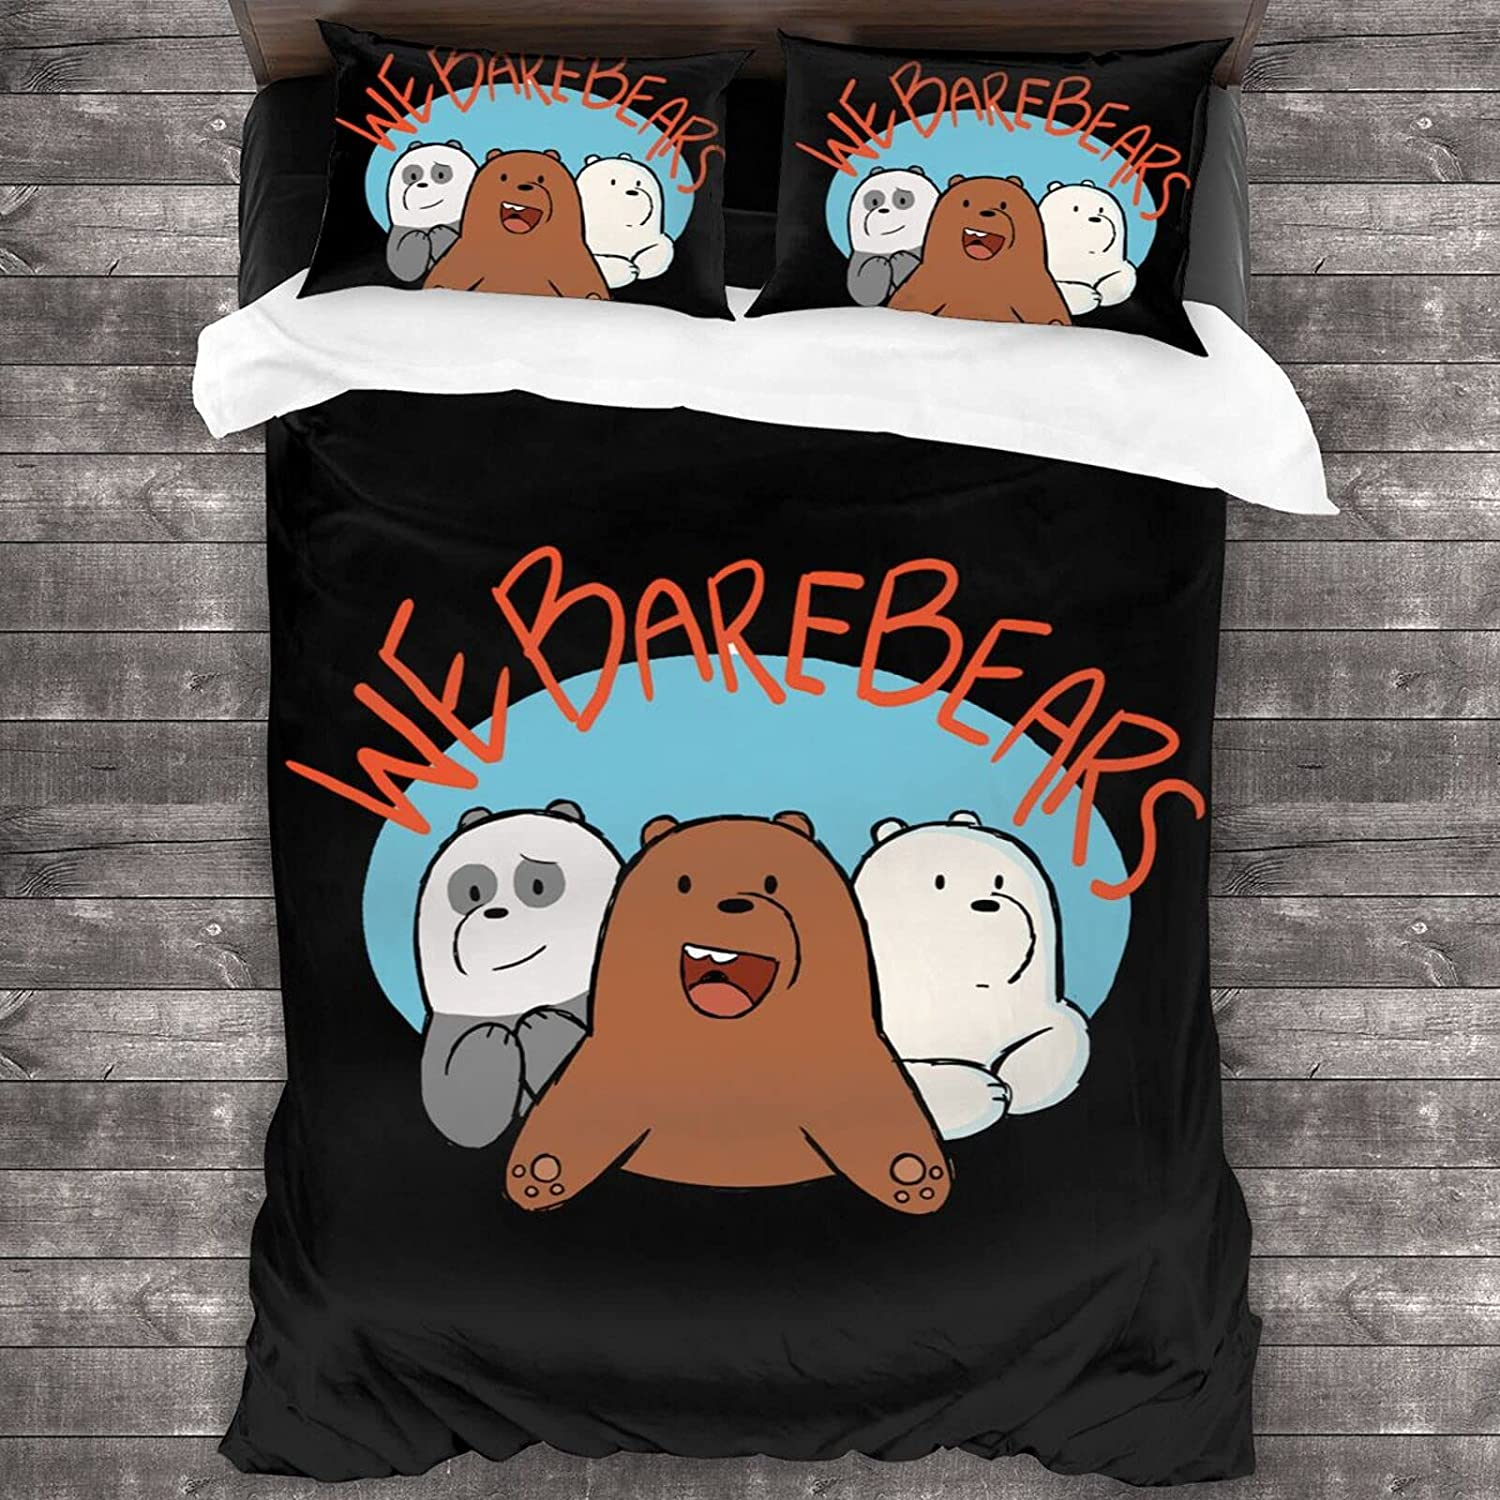 We Opening large New life release sale Bare Bears 3-Piece Bedding Set Cover Pillowcases Quilt 1 + 2